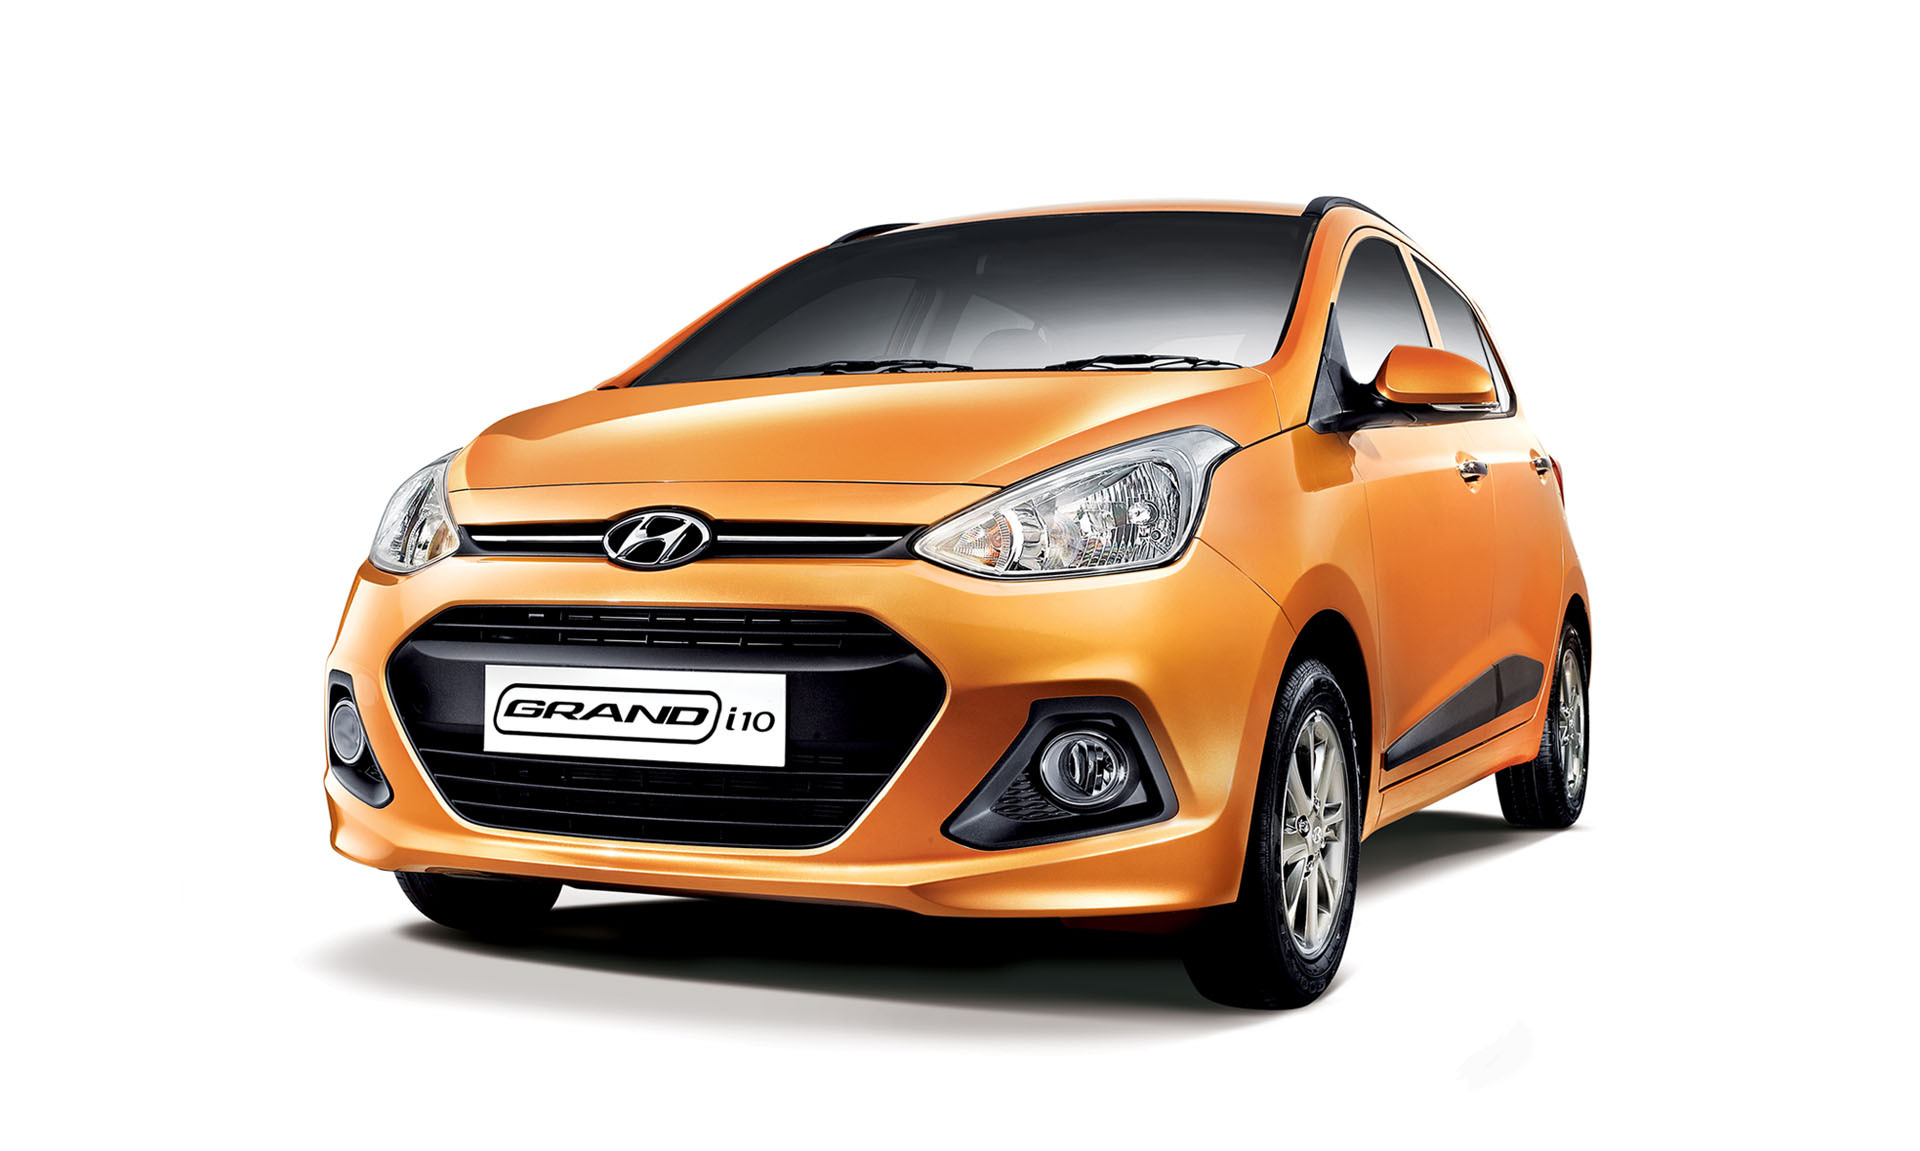 Hyundai_Grand_i10_Official_Wallpaper_7